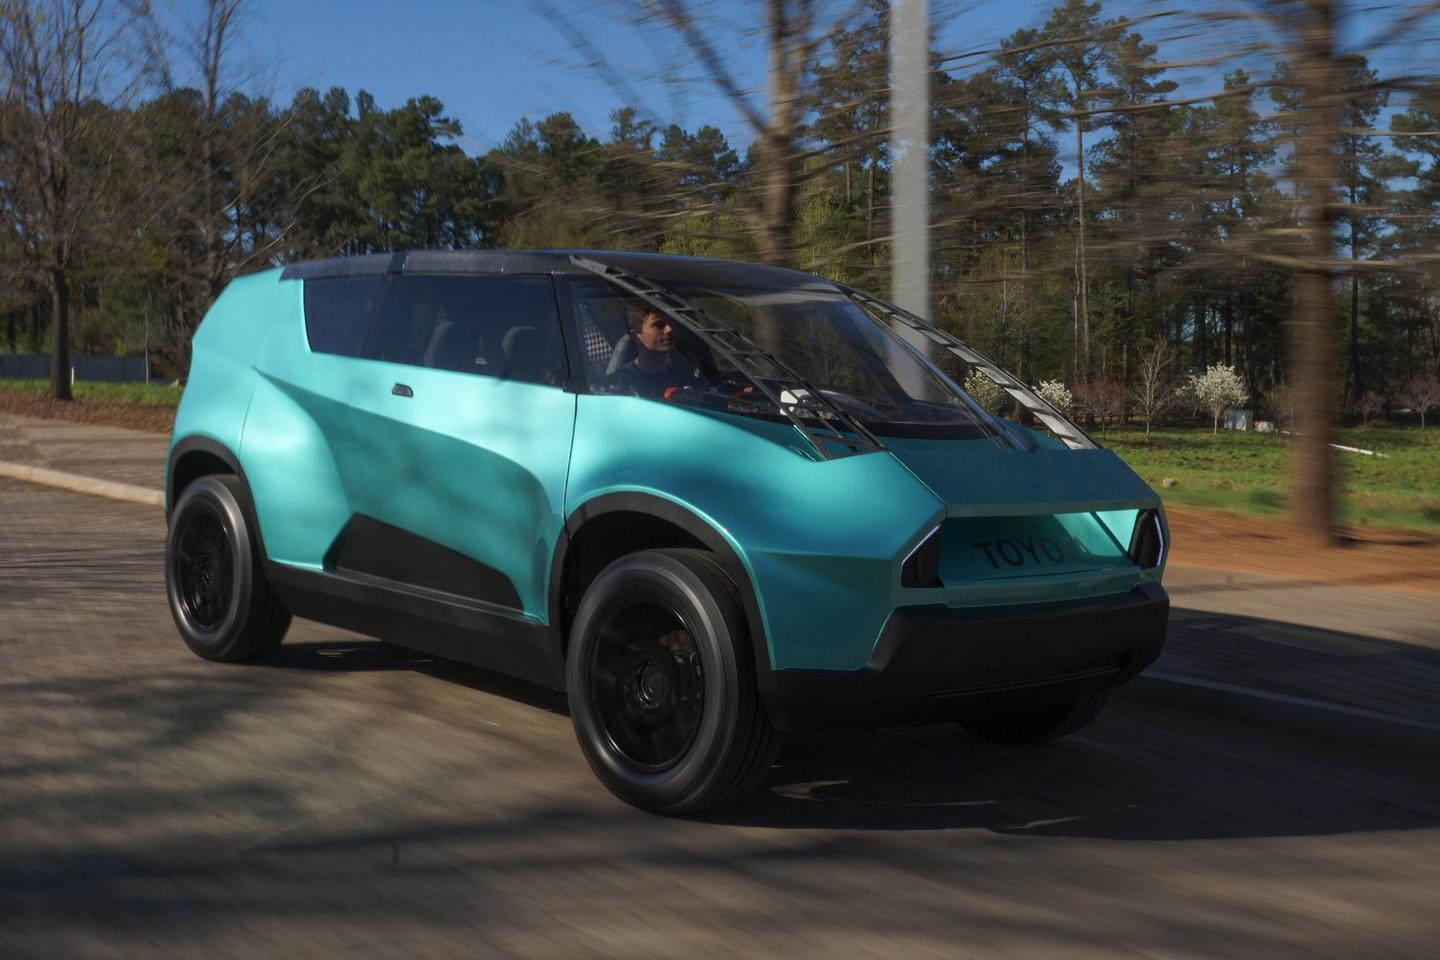 Toyota uBox's concept features a unique look and versatile layout